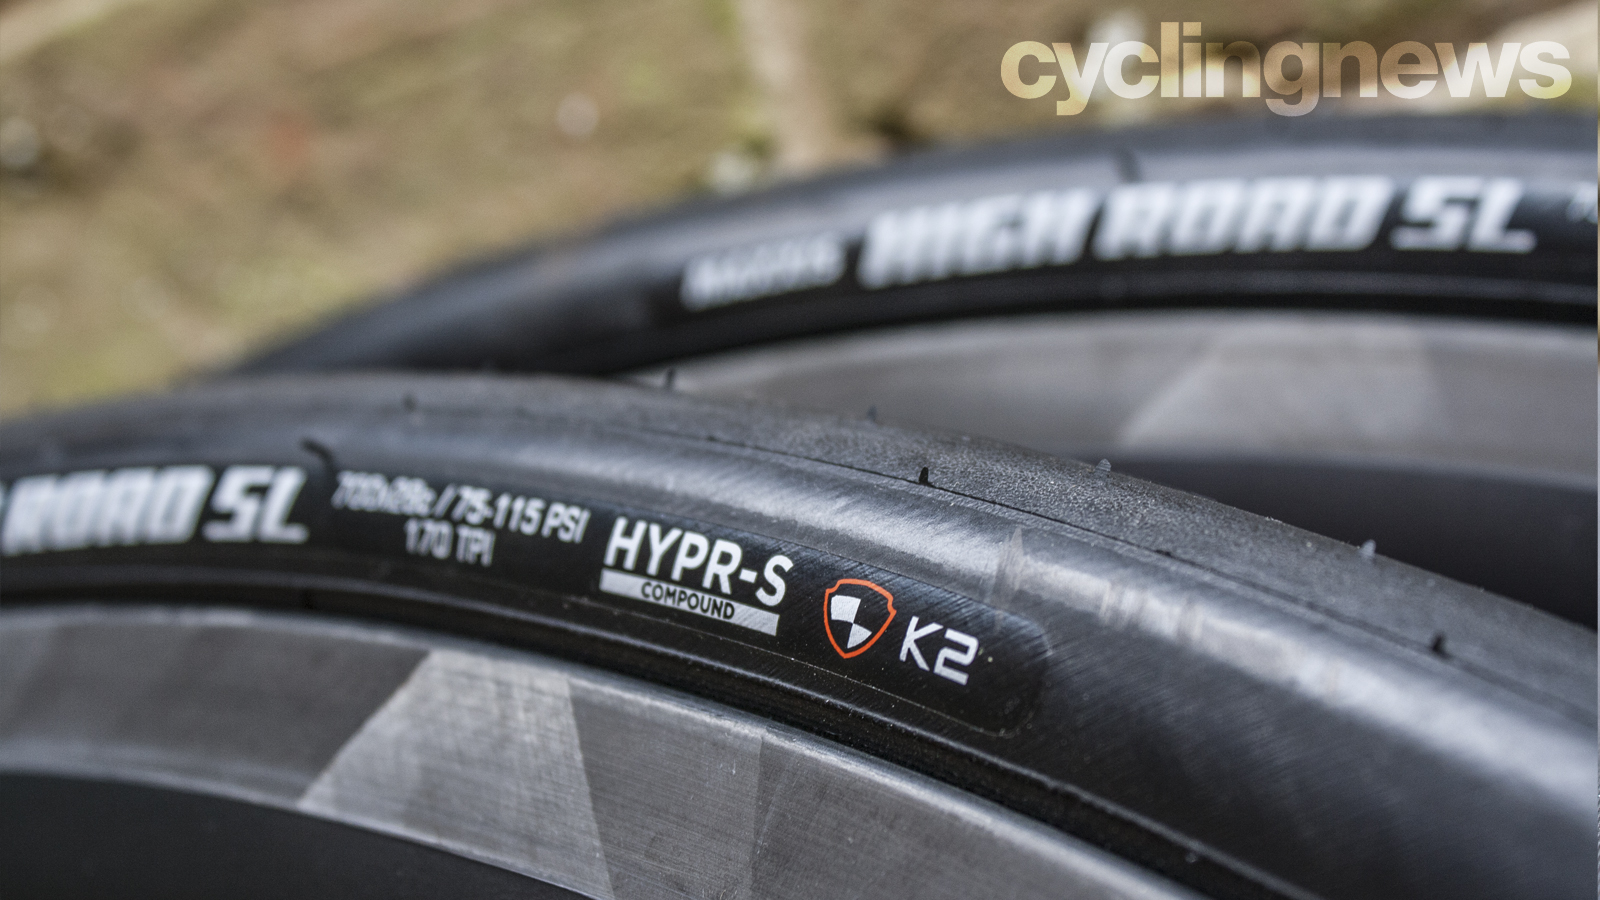 Maxxis High Road SL tyres